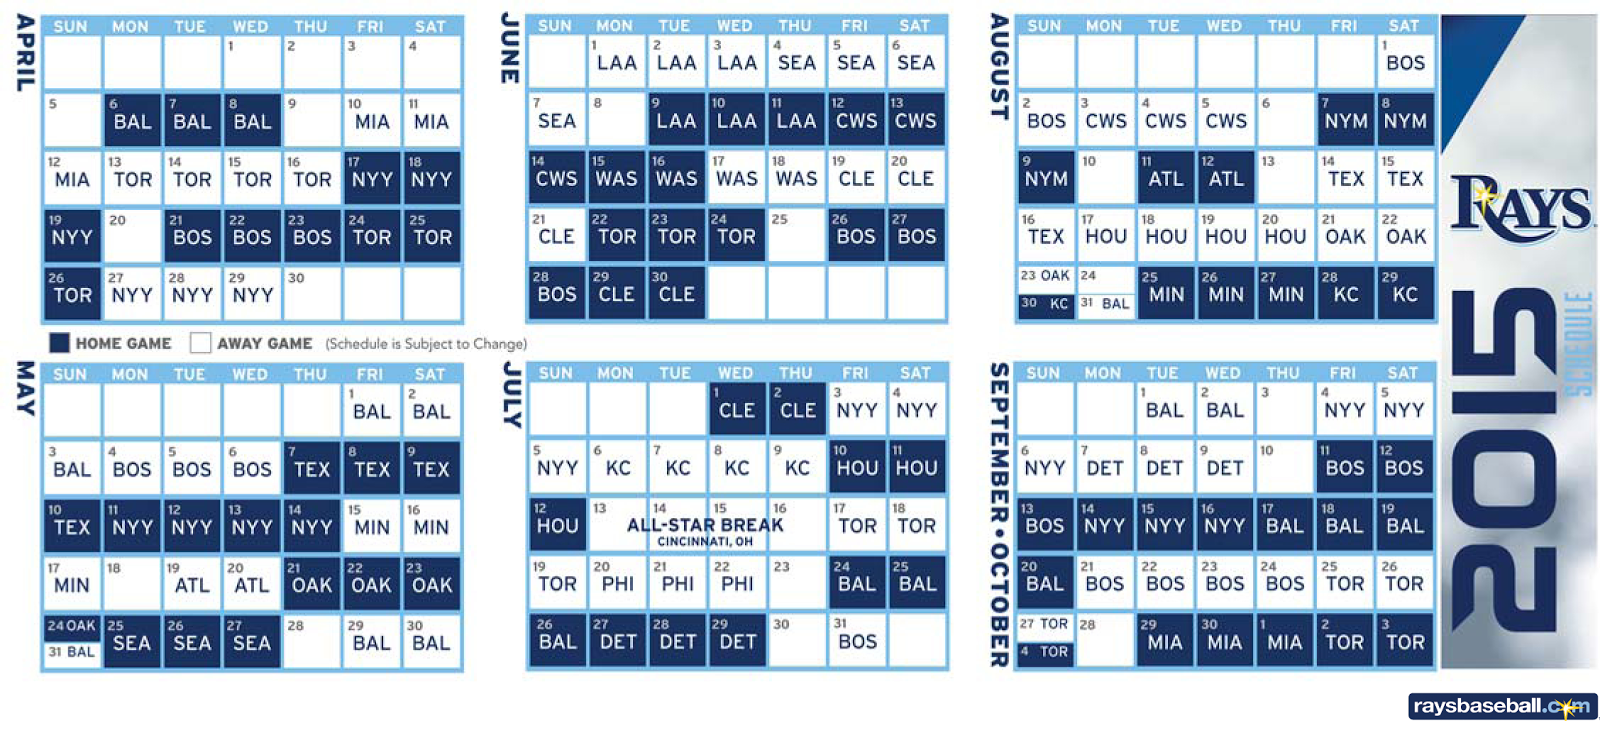 2015 Rays schedule